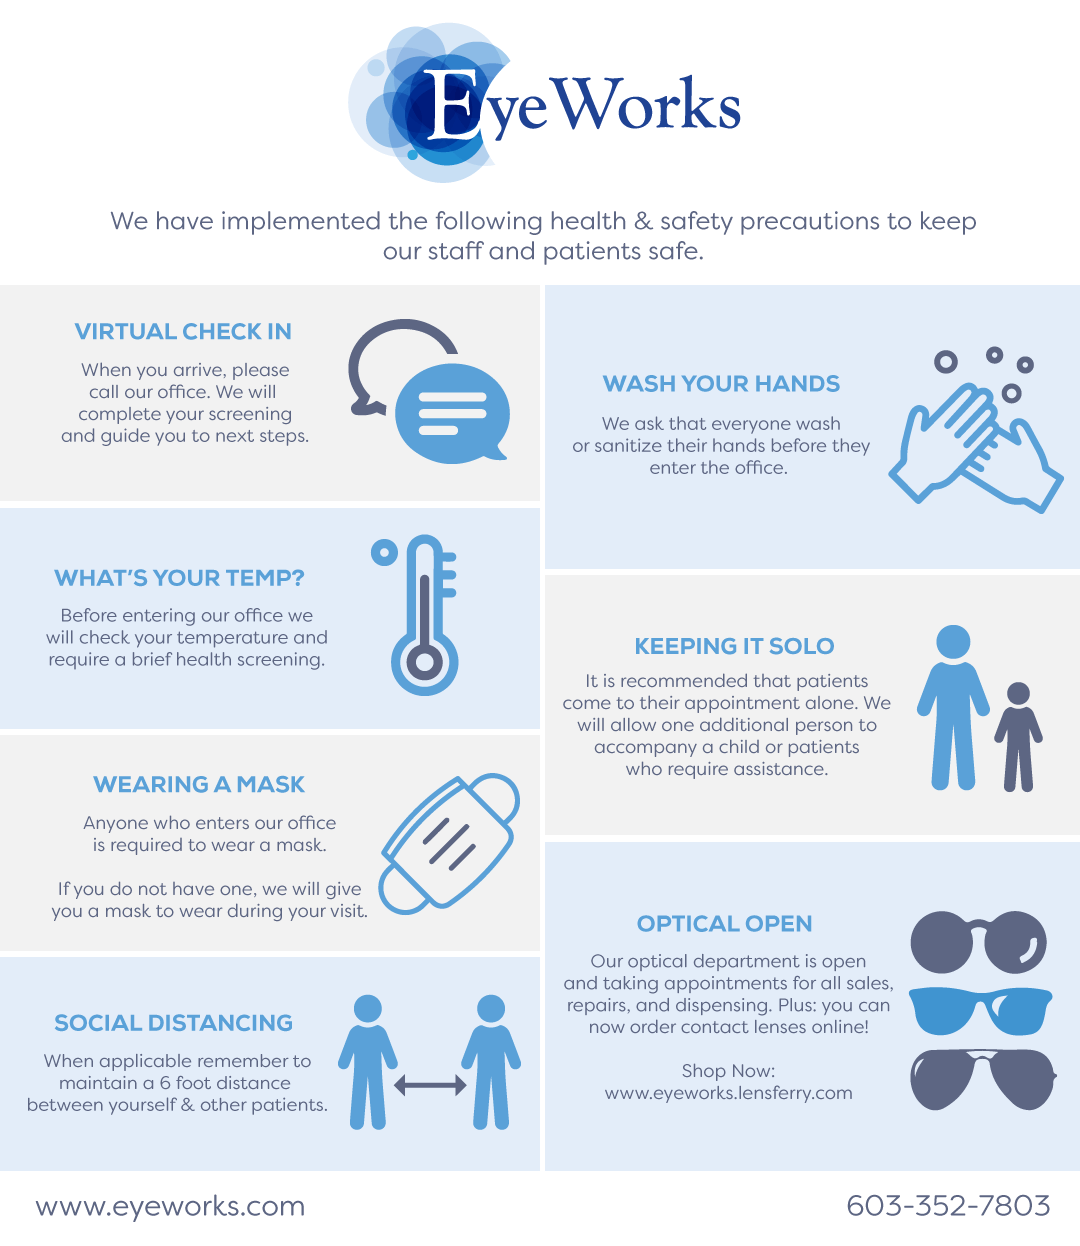 EyeWorks WebsitePopup